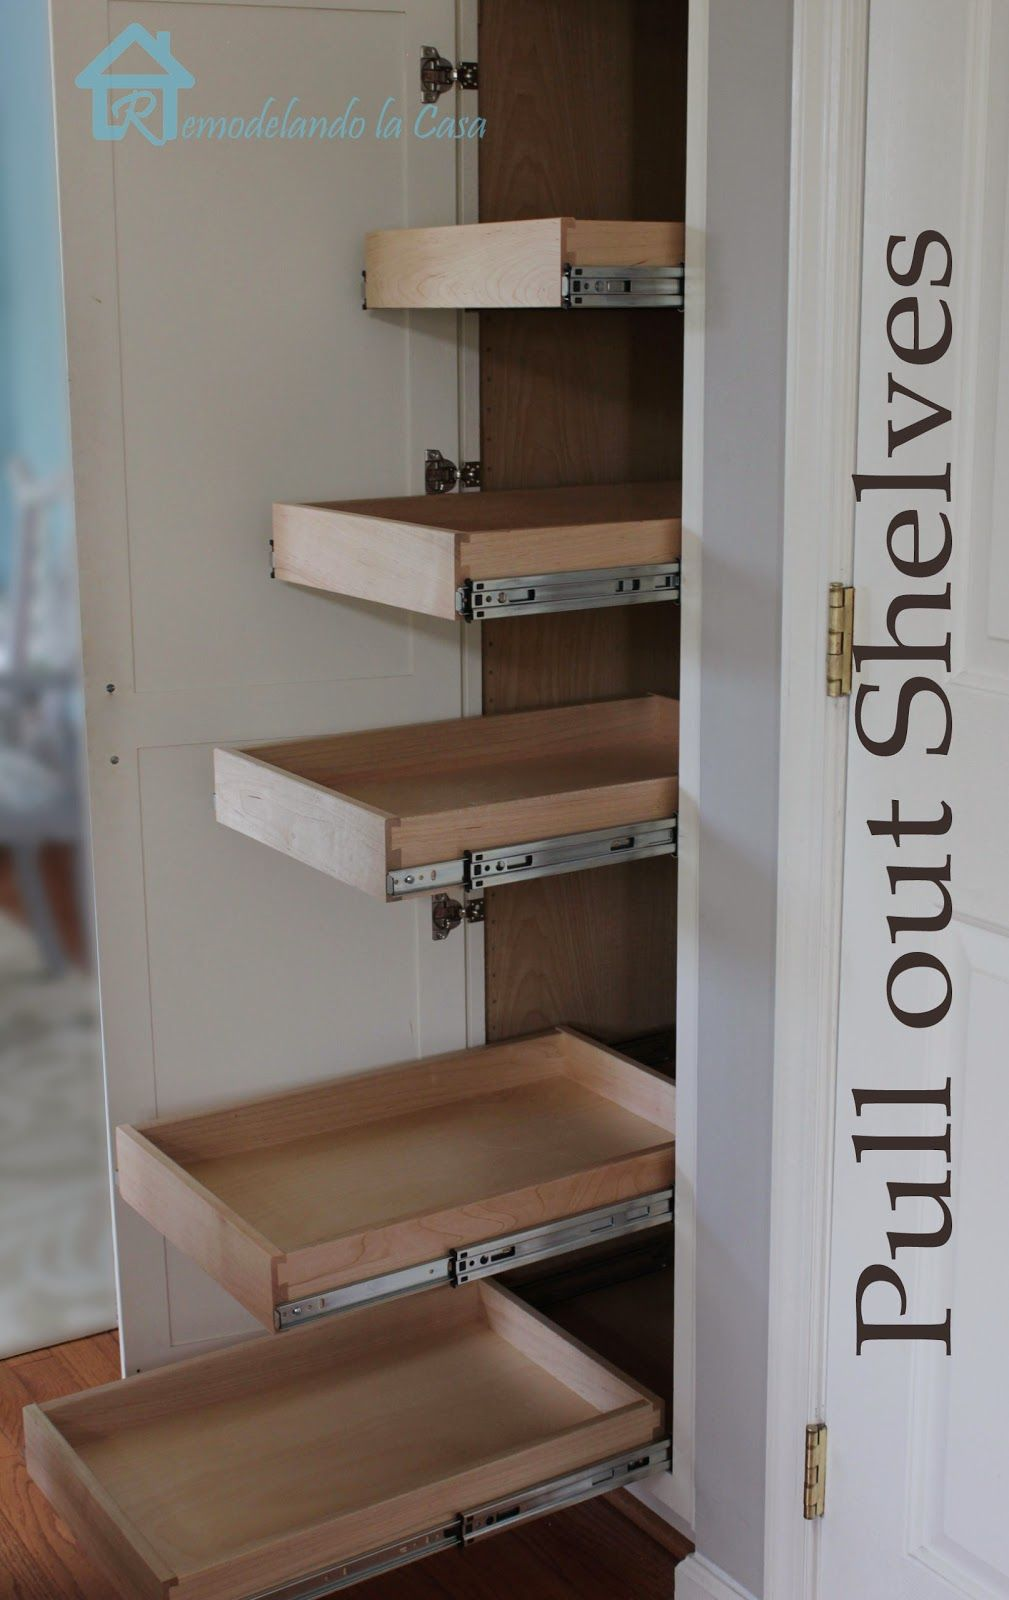 Kitchen Organization Pull Out Shelves In Pantry Pinterest Pantry Diy Shelving And Pantry